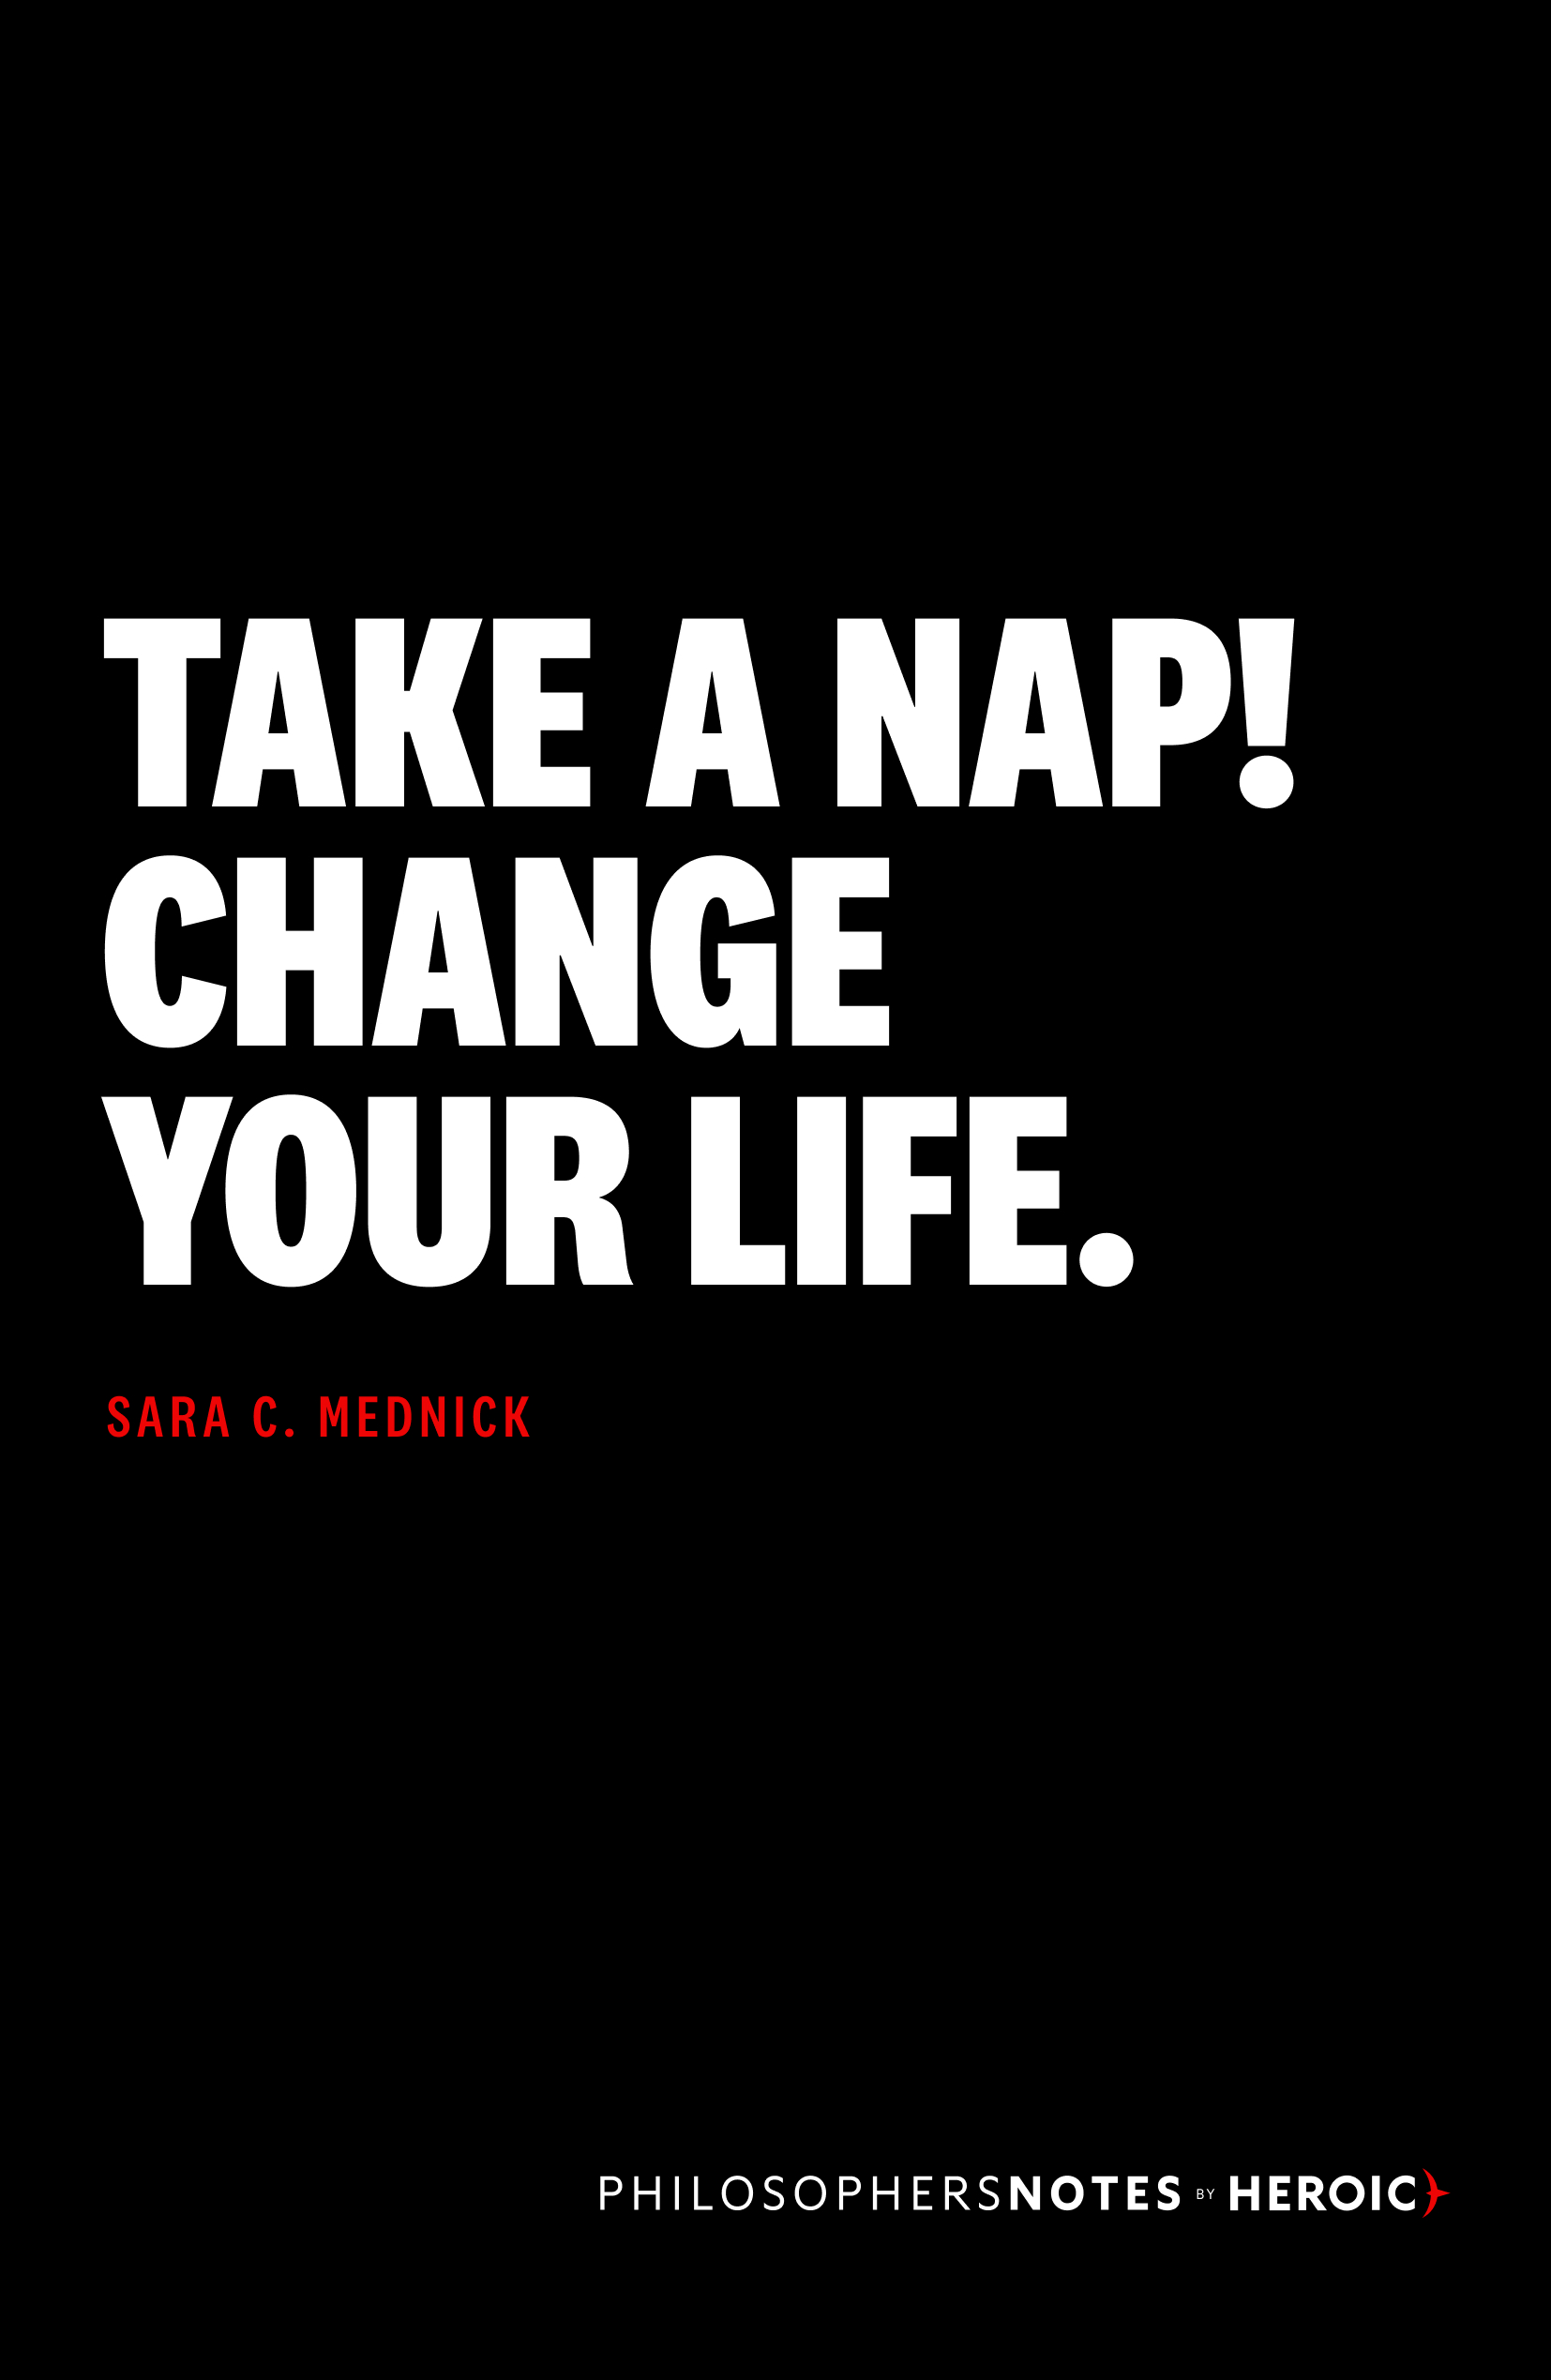 Take a Nap! Change Your Life. Book Cover